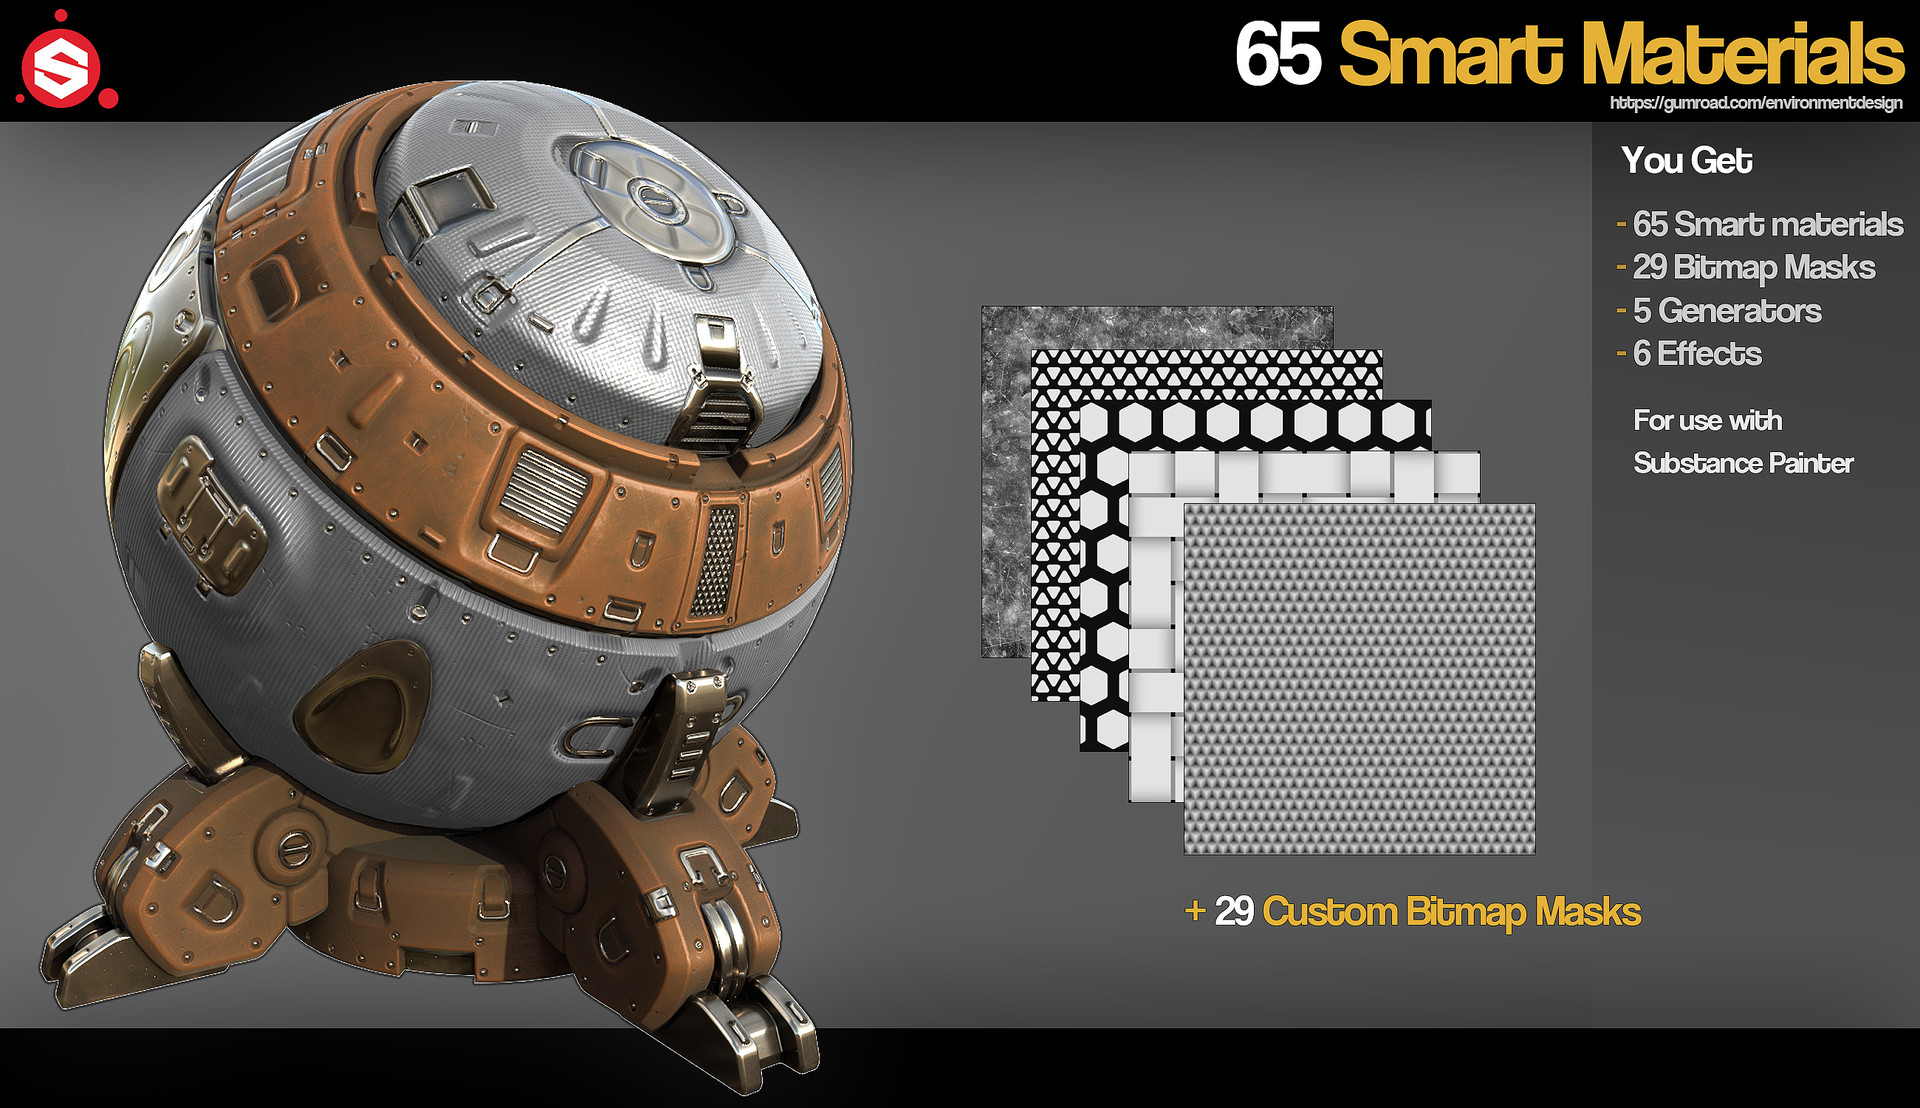 65 Industrial Smart Materials for Substance Painter